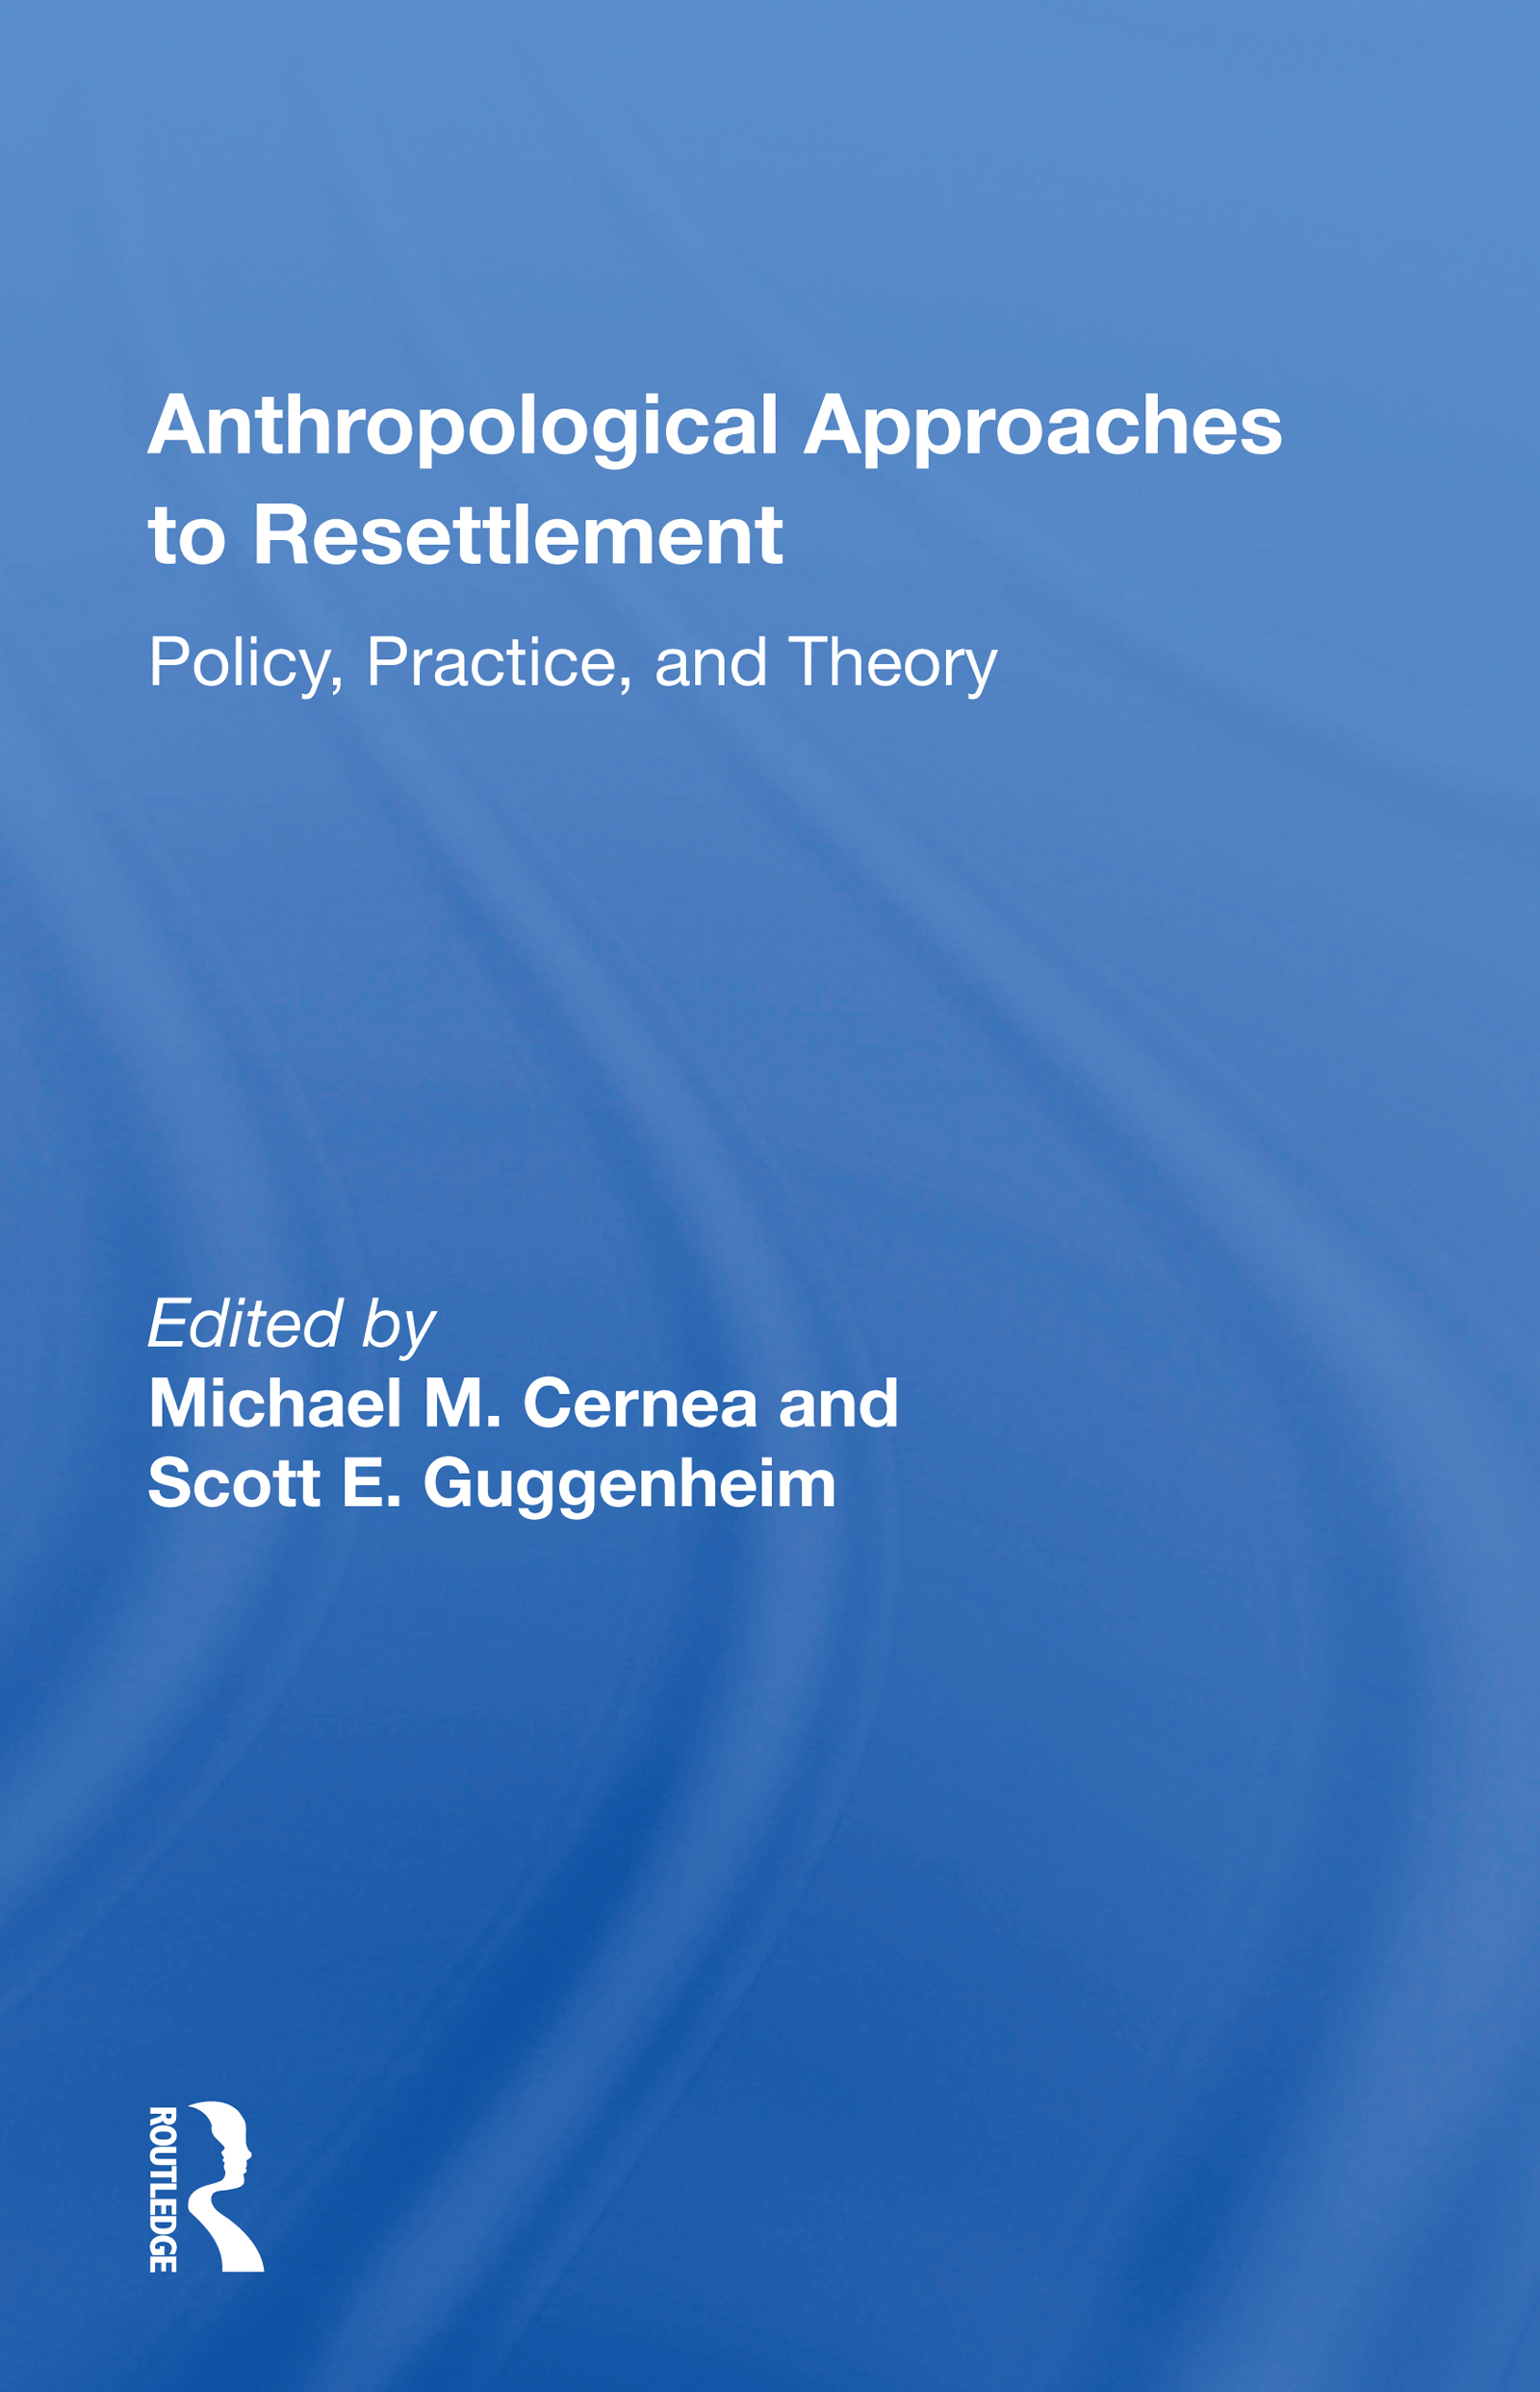 Anthropological Approaches to Resettlement